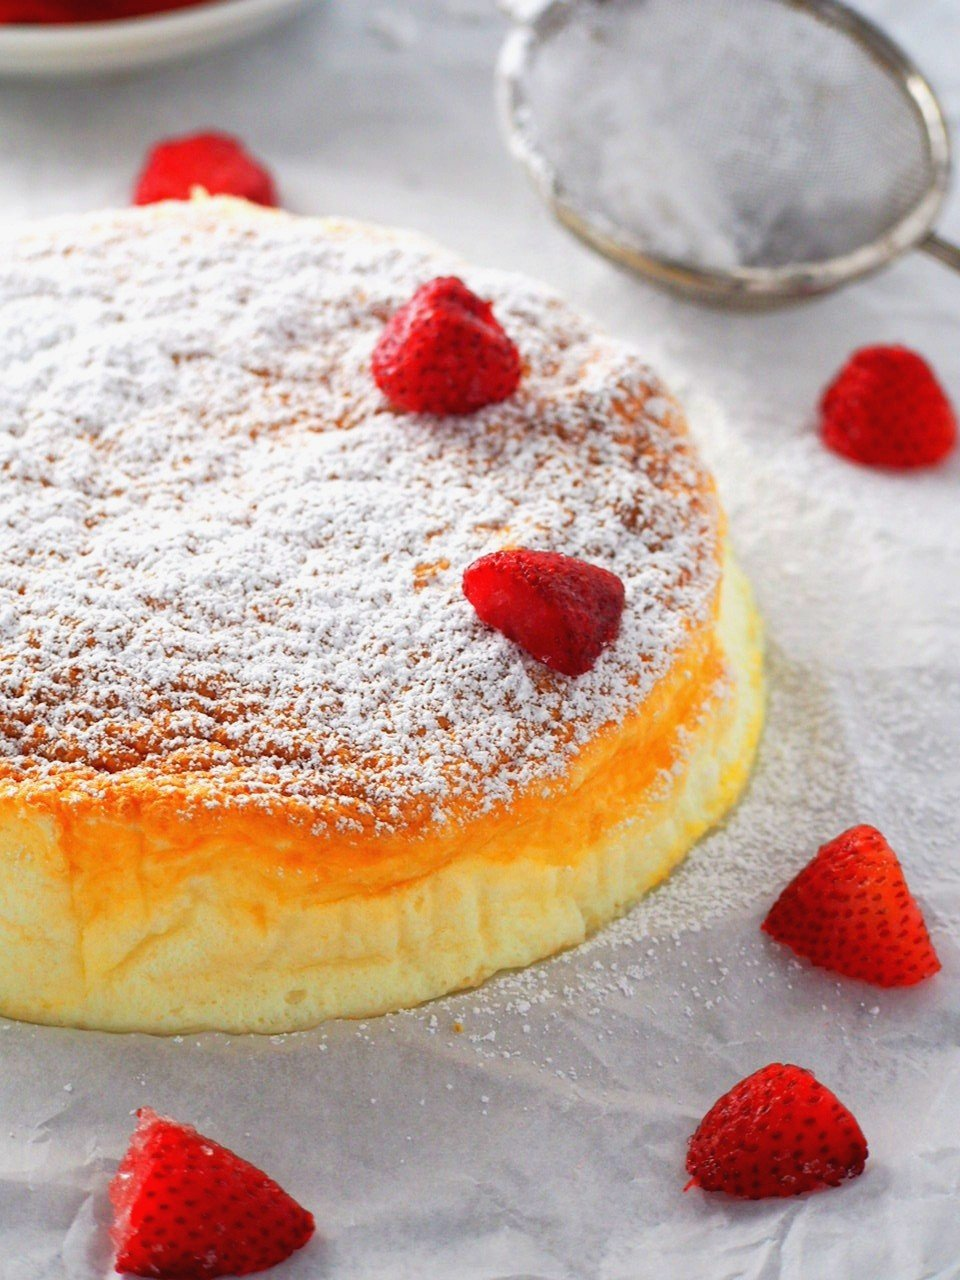 Condensed Milk Cheesecake garnished with icing sugar and strawberries.